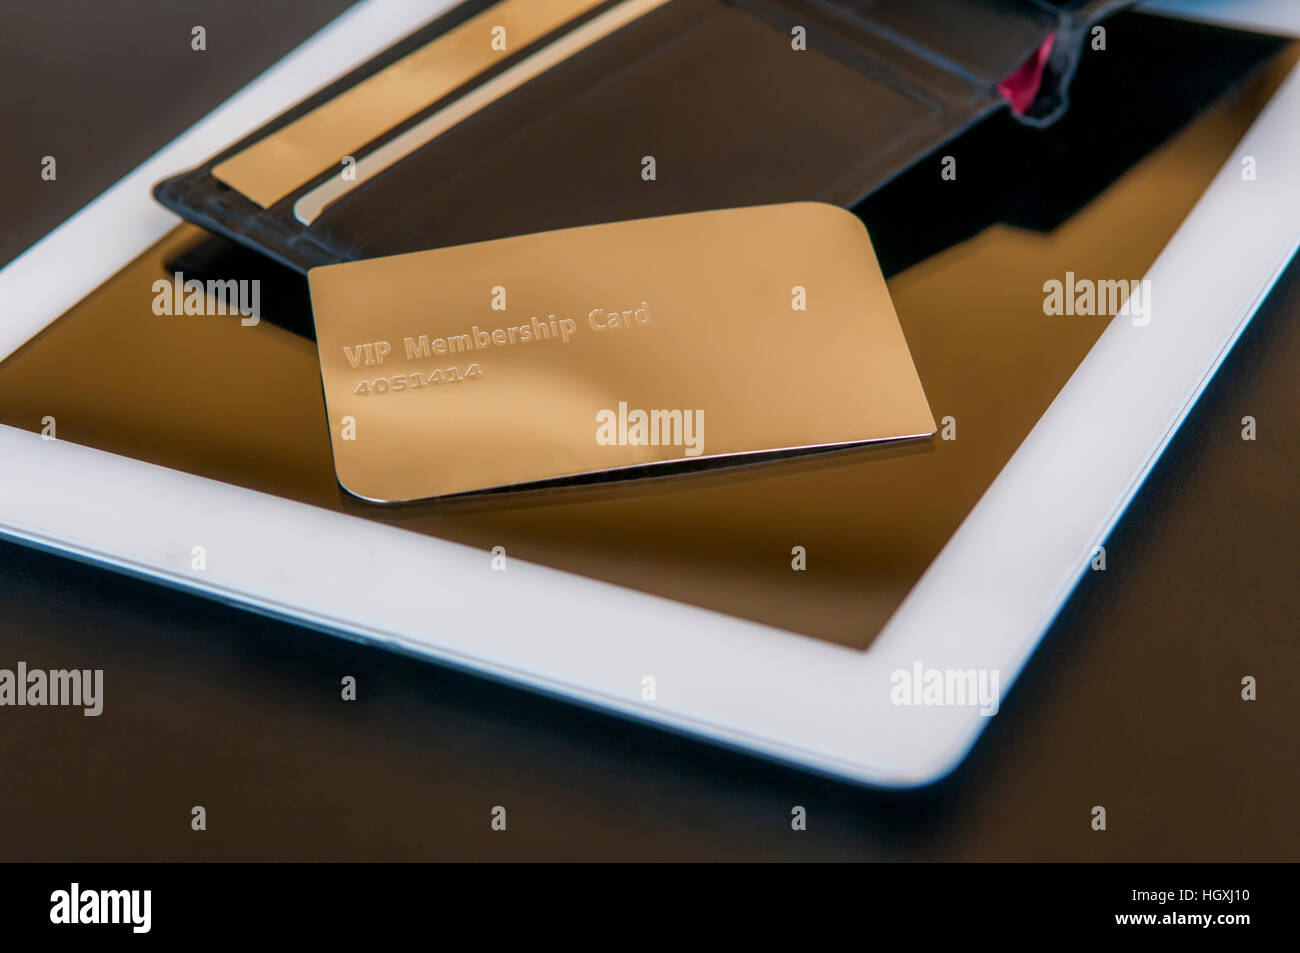 golden vip card on pad - Stock Image